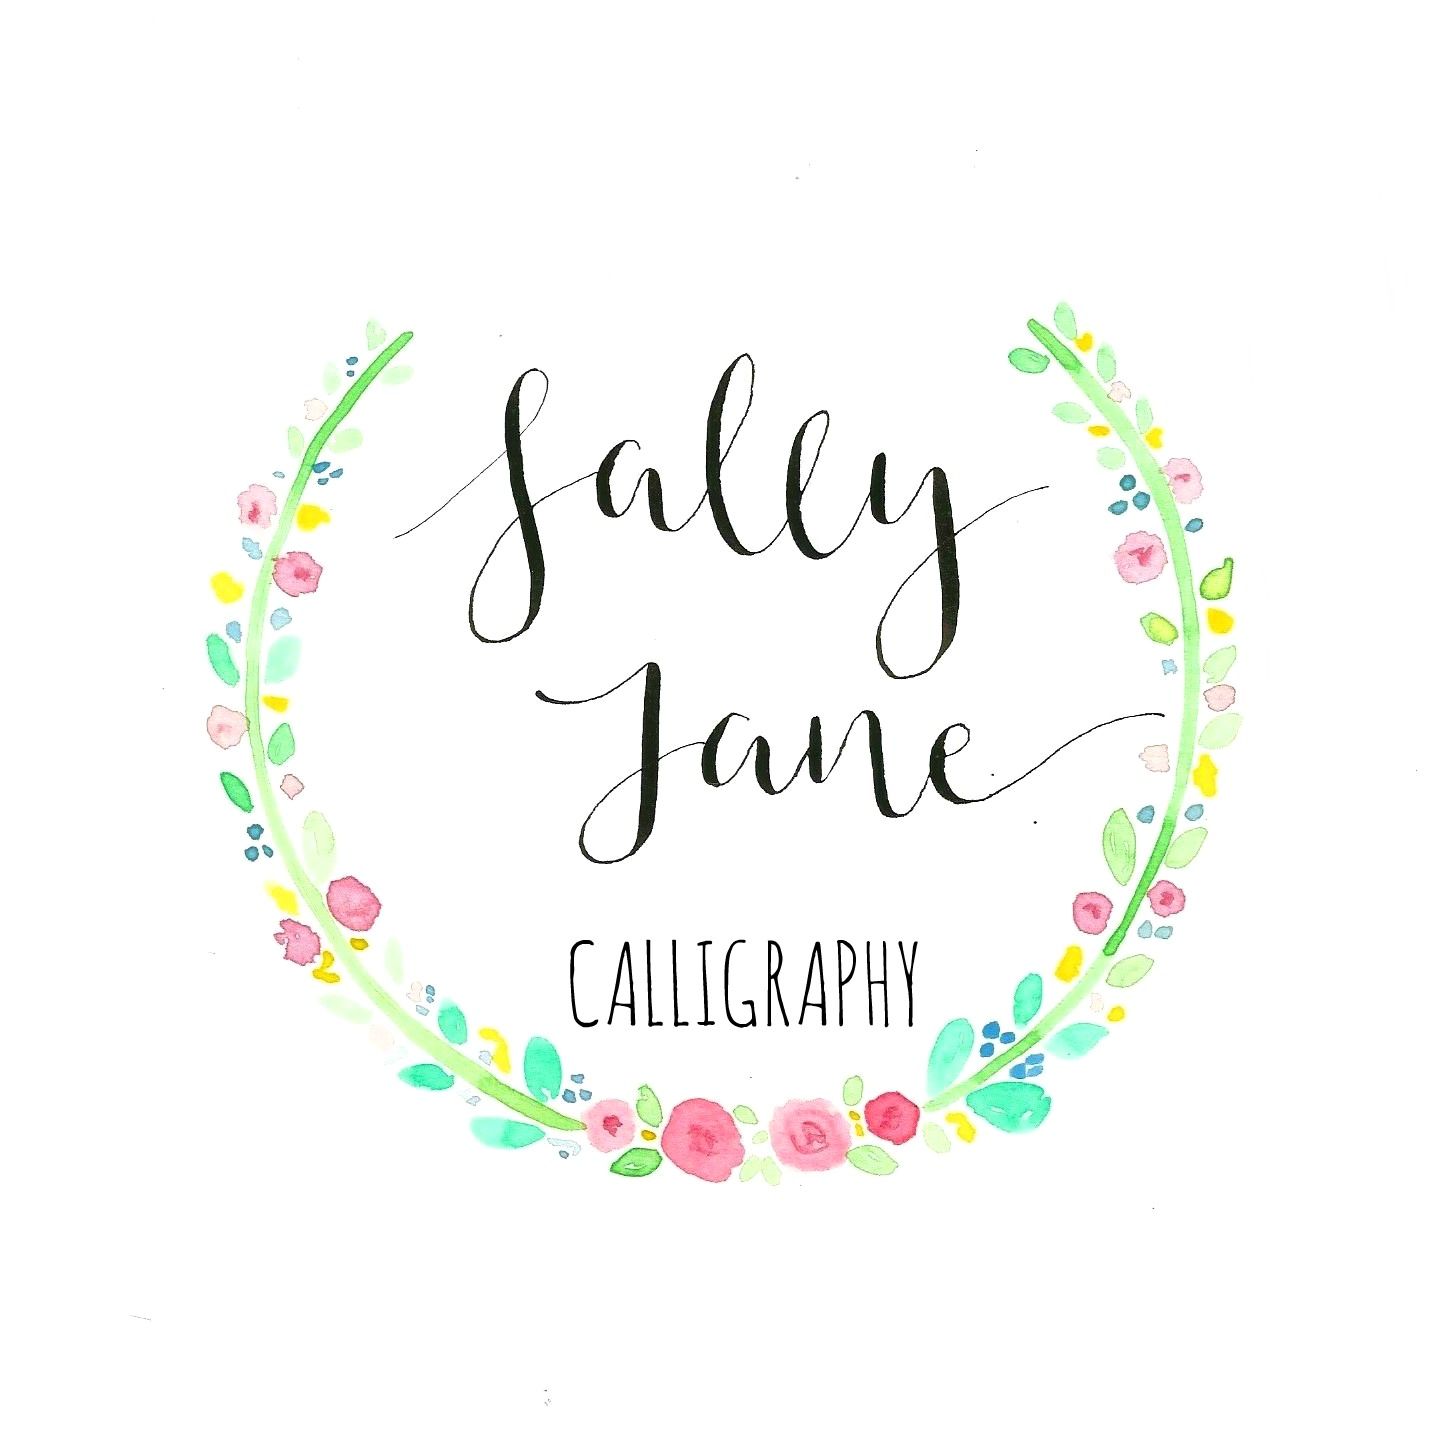 Sally Jane Calligraphy